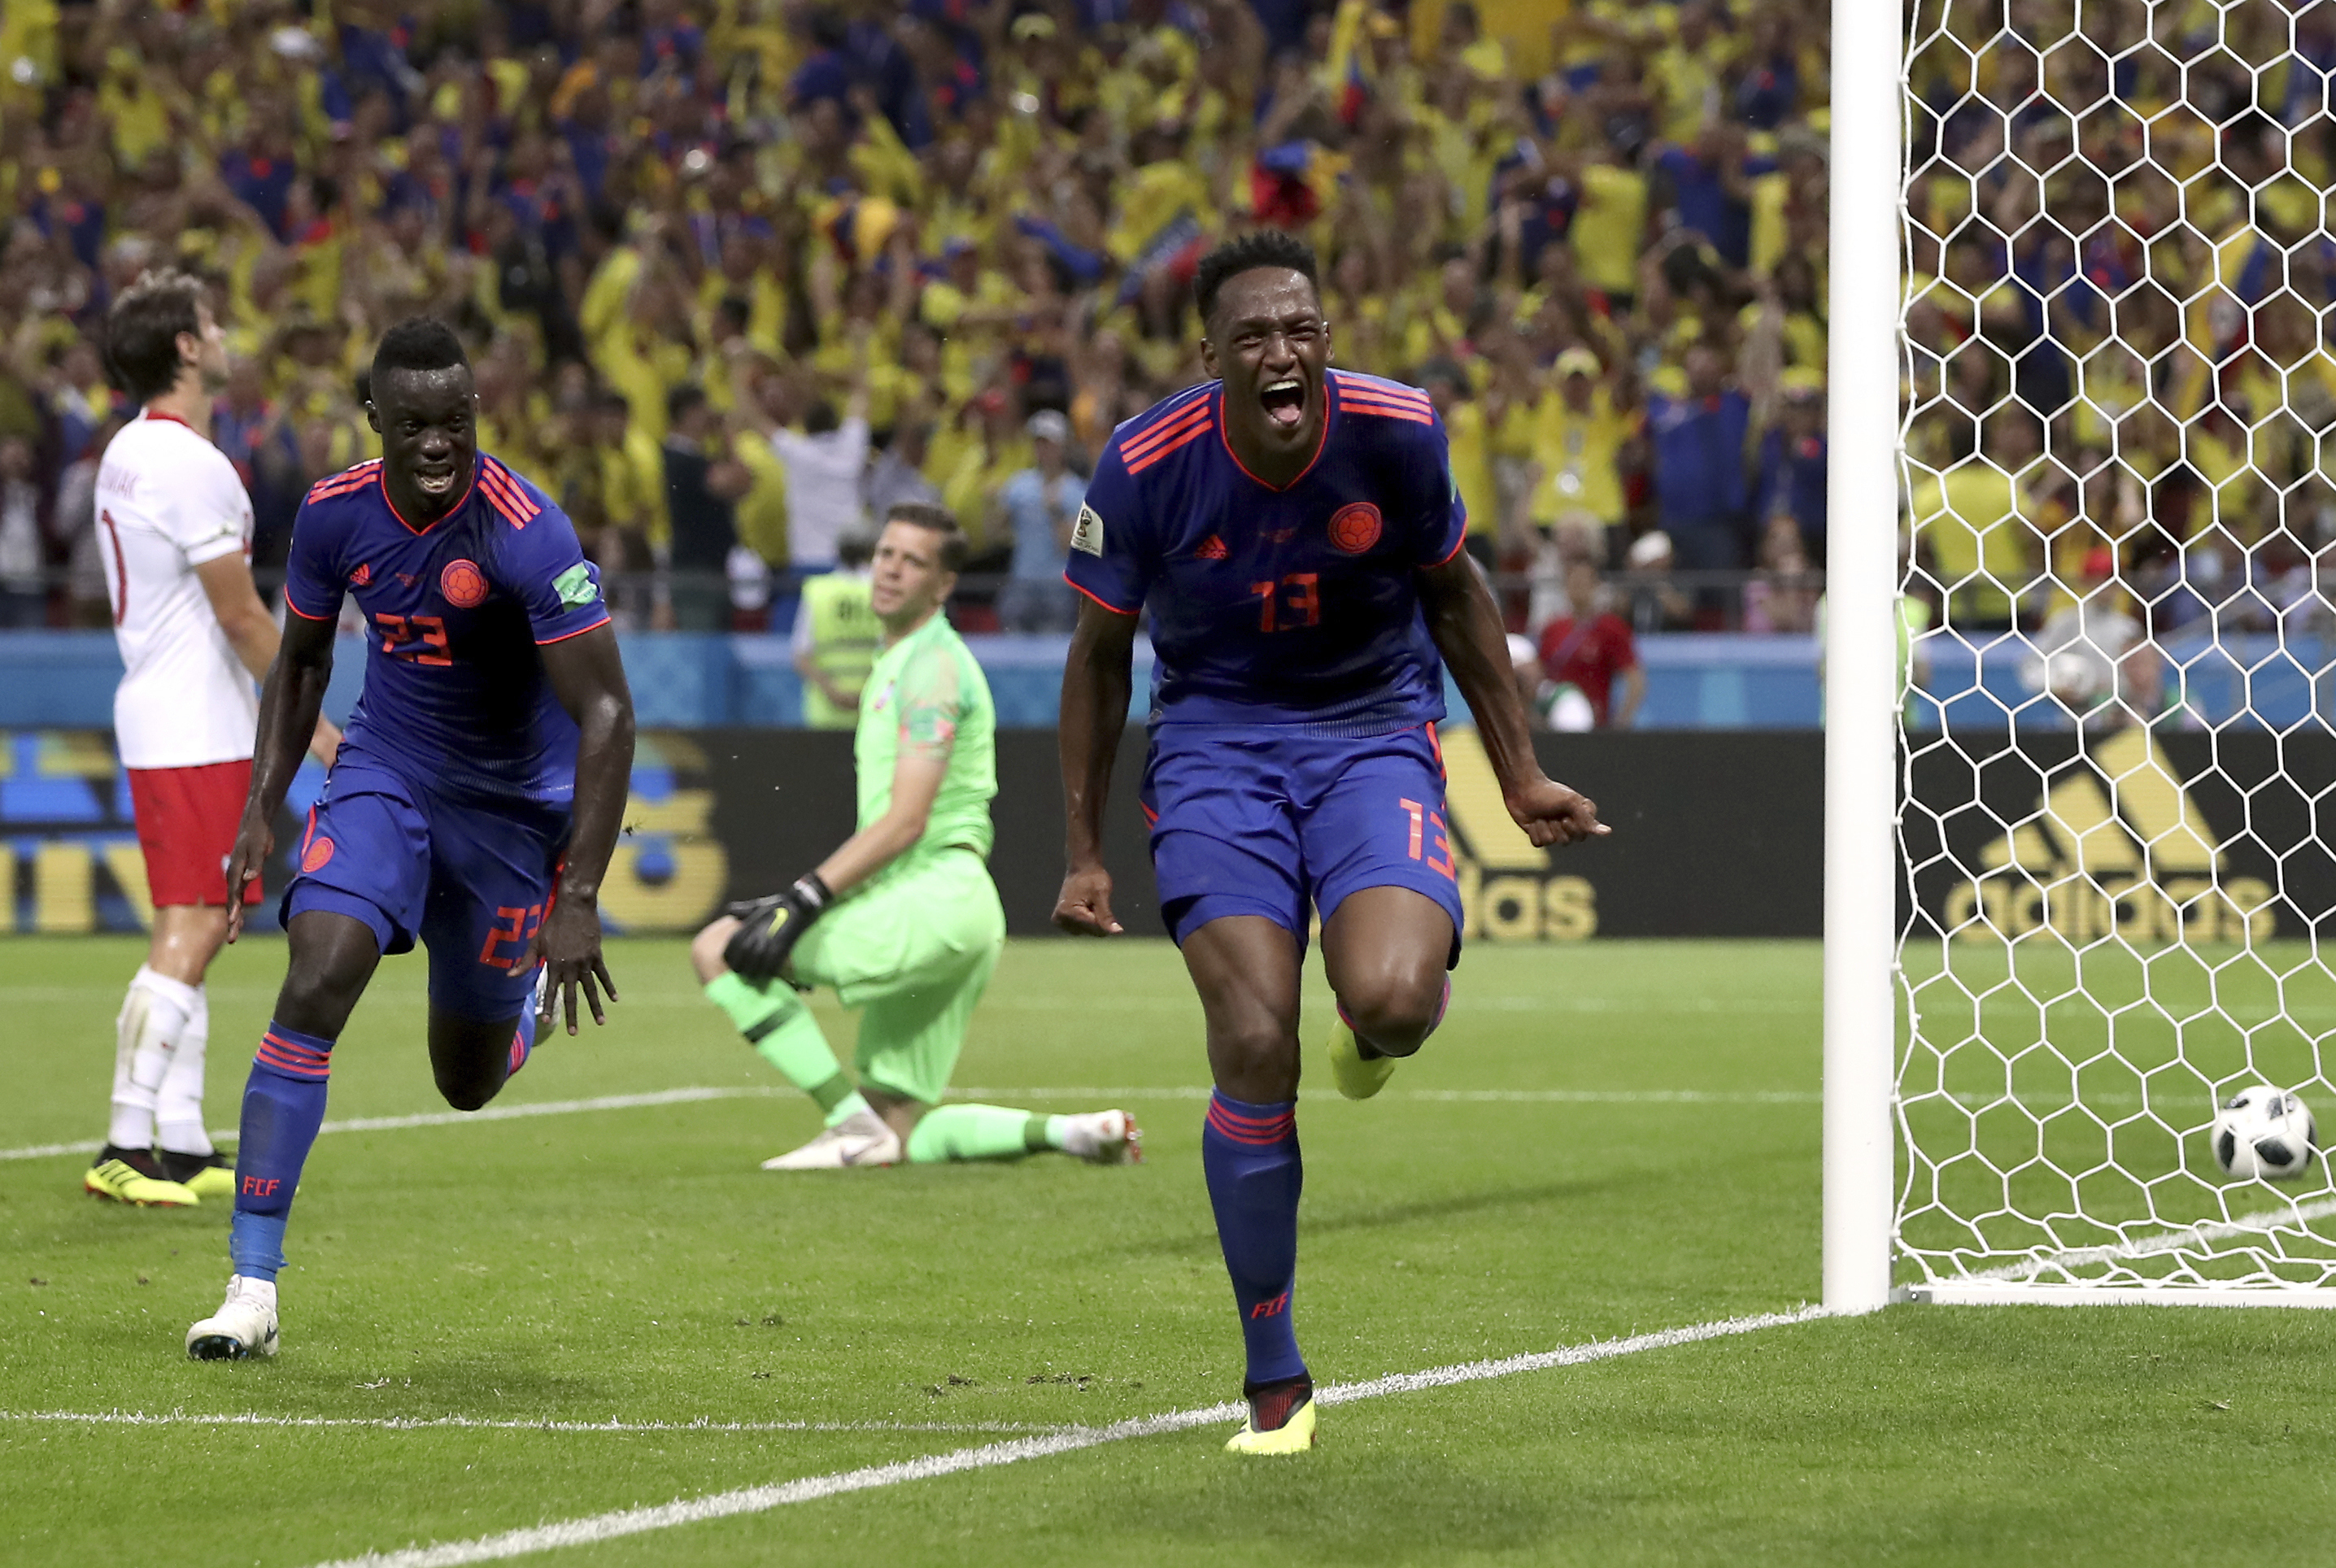 "<div class=""meta image-caption""><div class=""origin-logo origin-image none""><span>none</span></div><span class=""caption-text"">Colombia's scorer Yerry Mina, right and his teammate Davinson Sanchez, left, celebrate the opening goal during the group H match against Poland at the Kazan Arena on June 24. (Thanassis Stavrakis/AP Photo)</span></div>"